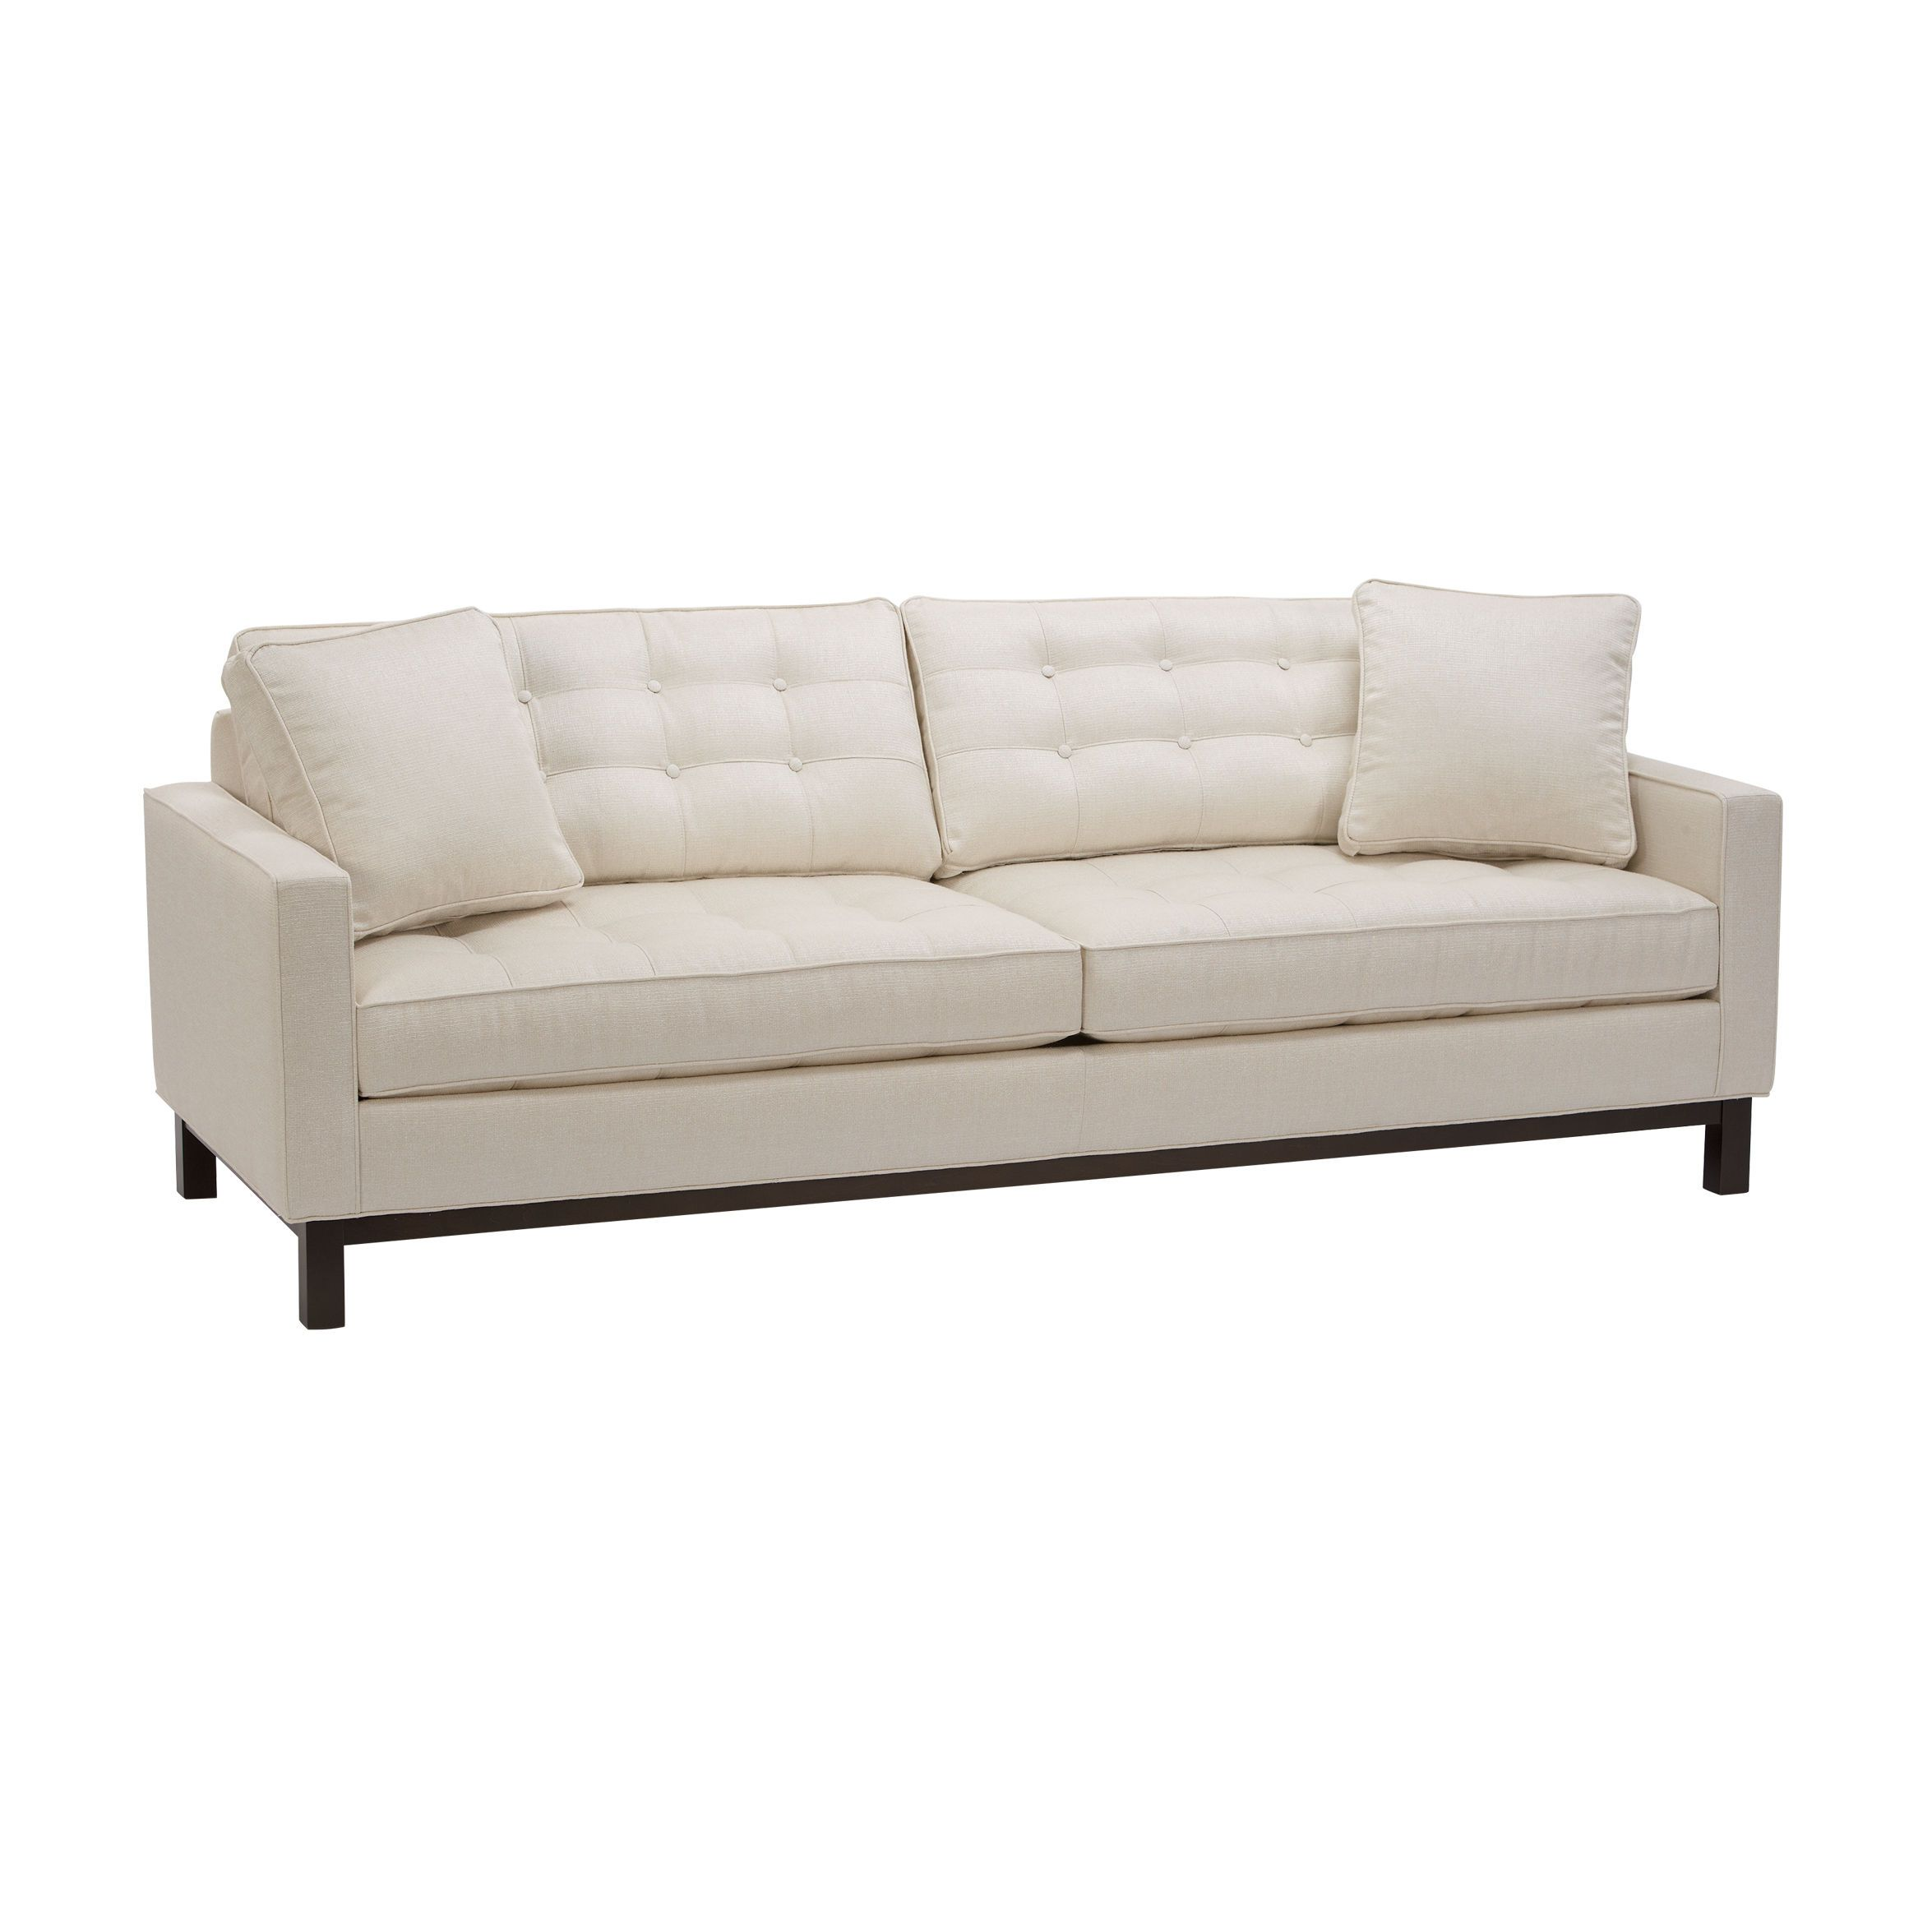 Melrose 87 Sofa Ethan Allen Us Sofa Styling Tufted Leather